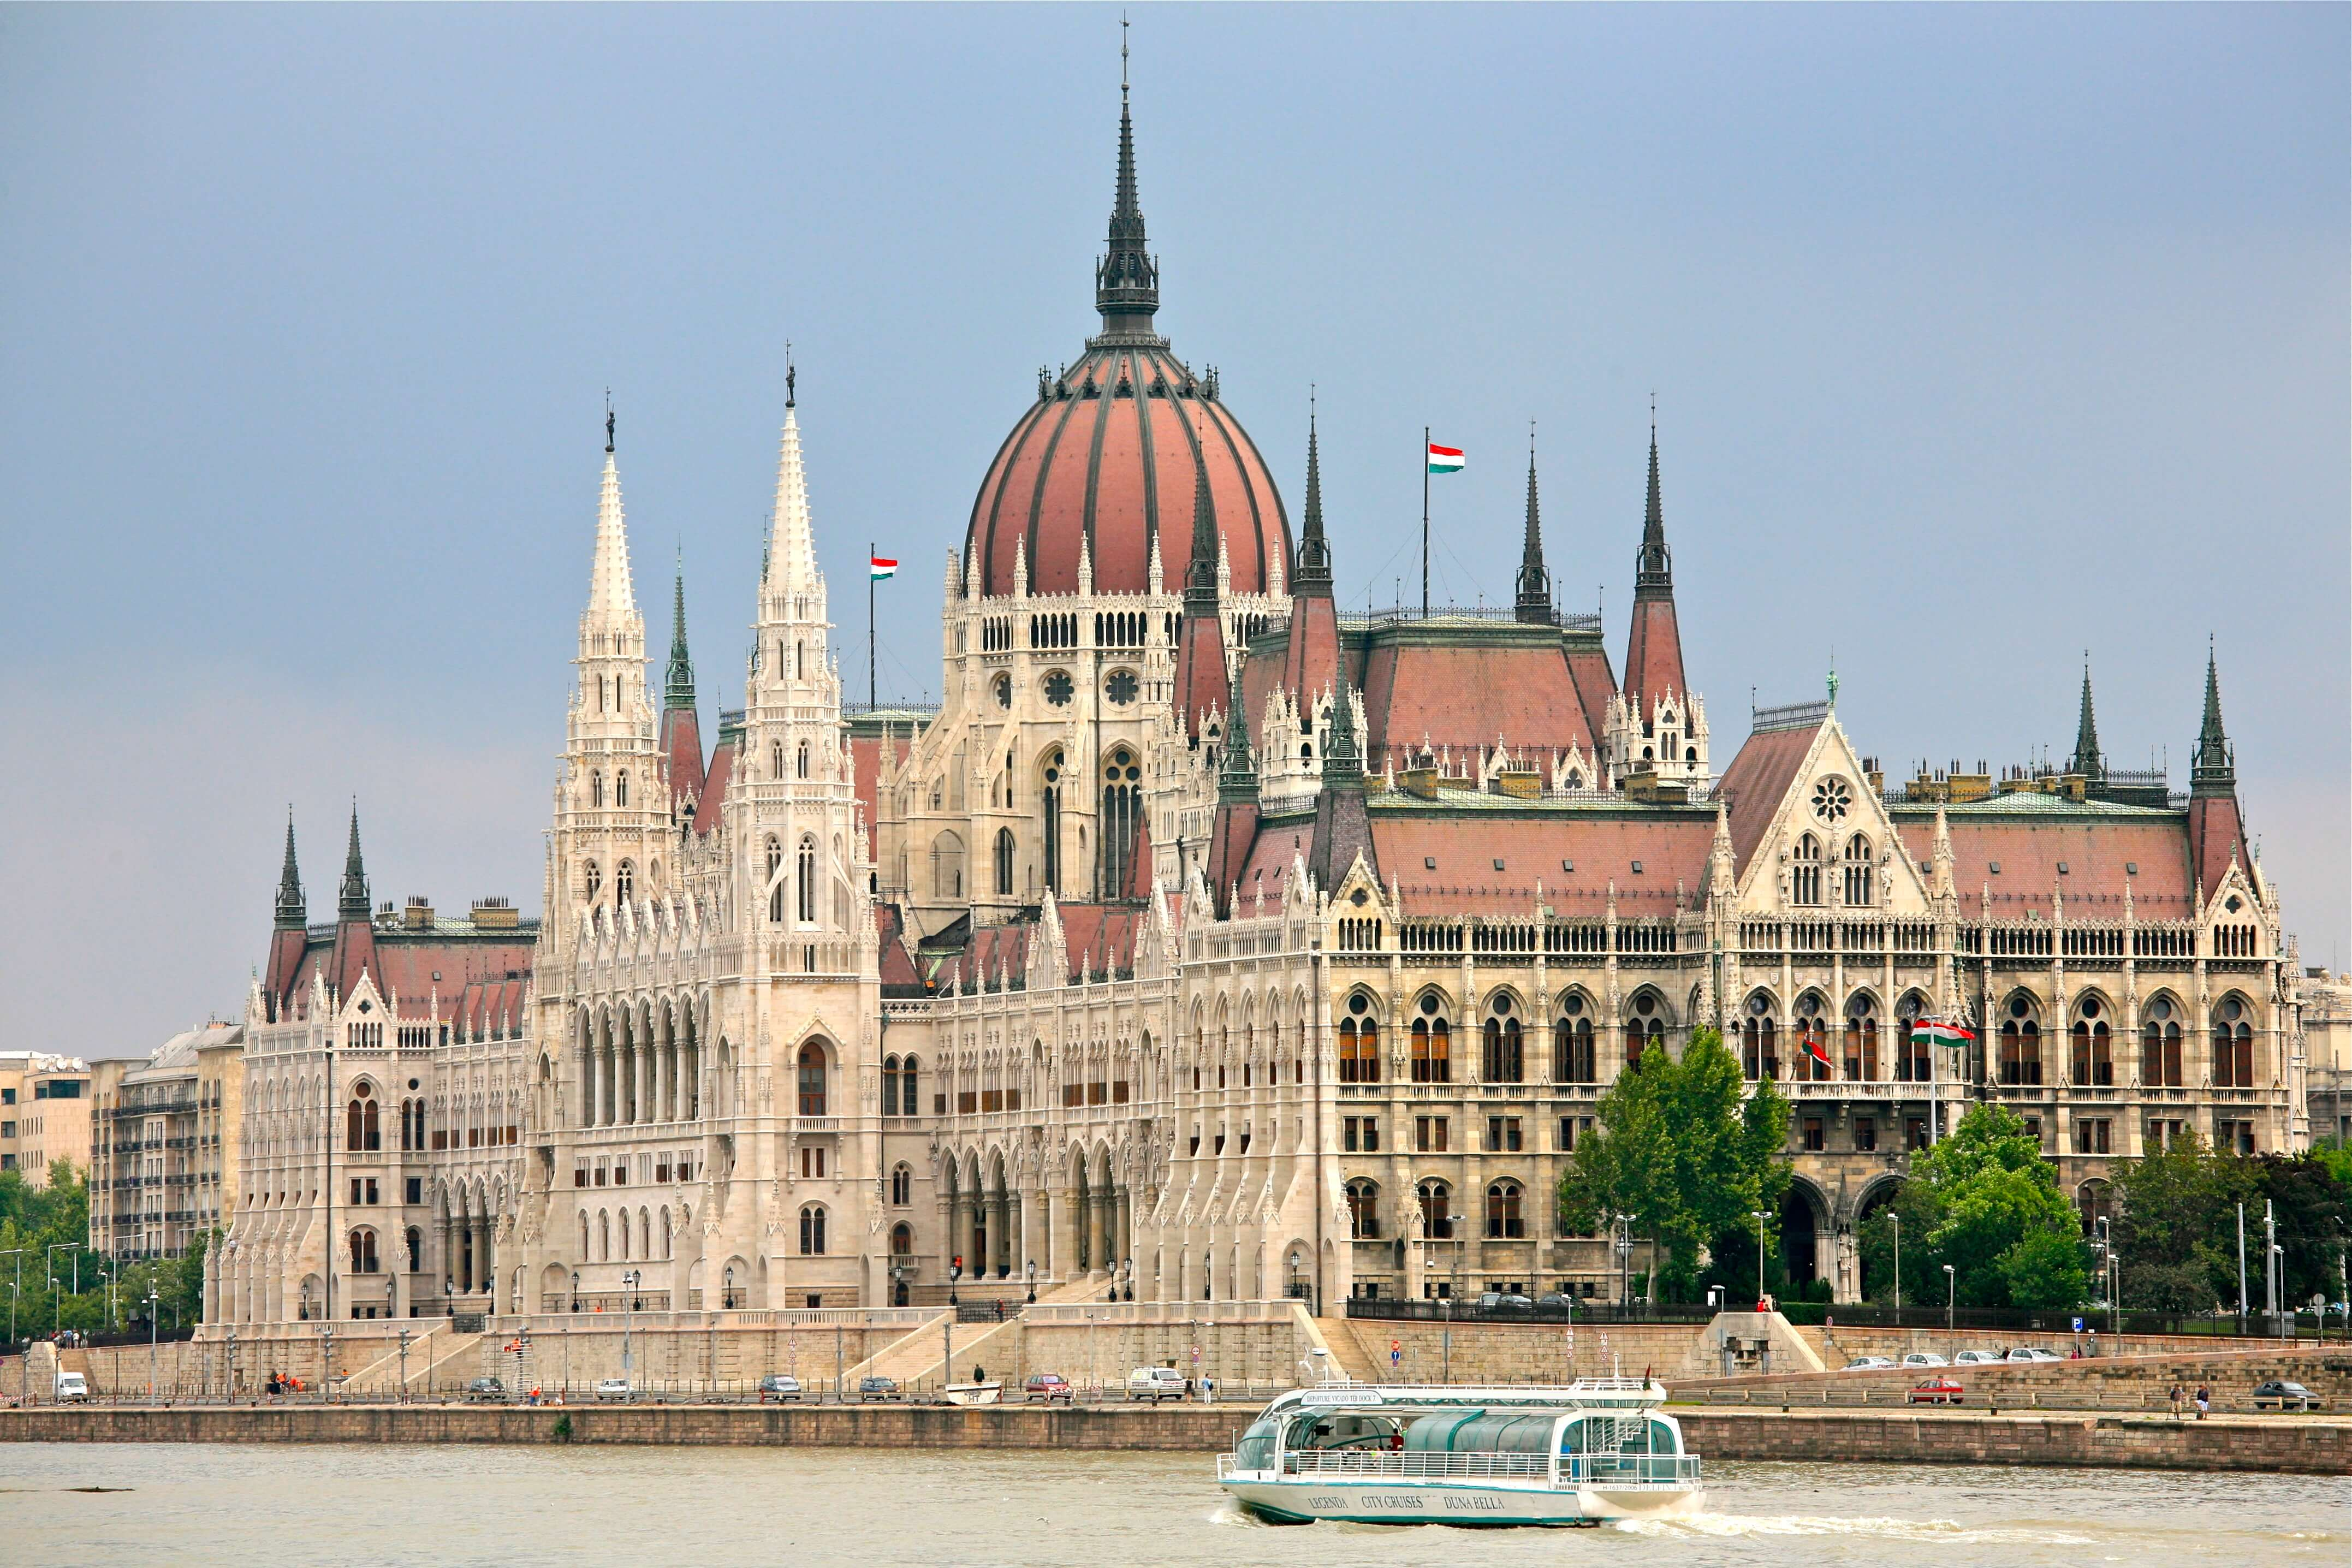 Statement on the Parliamentary Election in Hungary